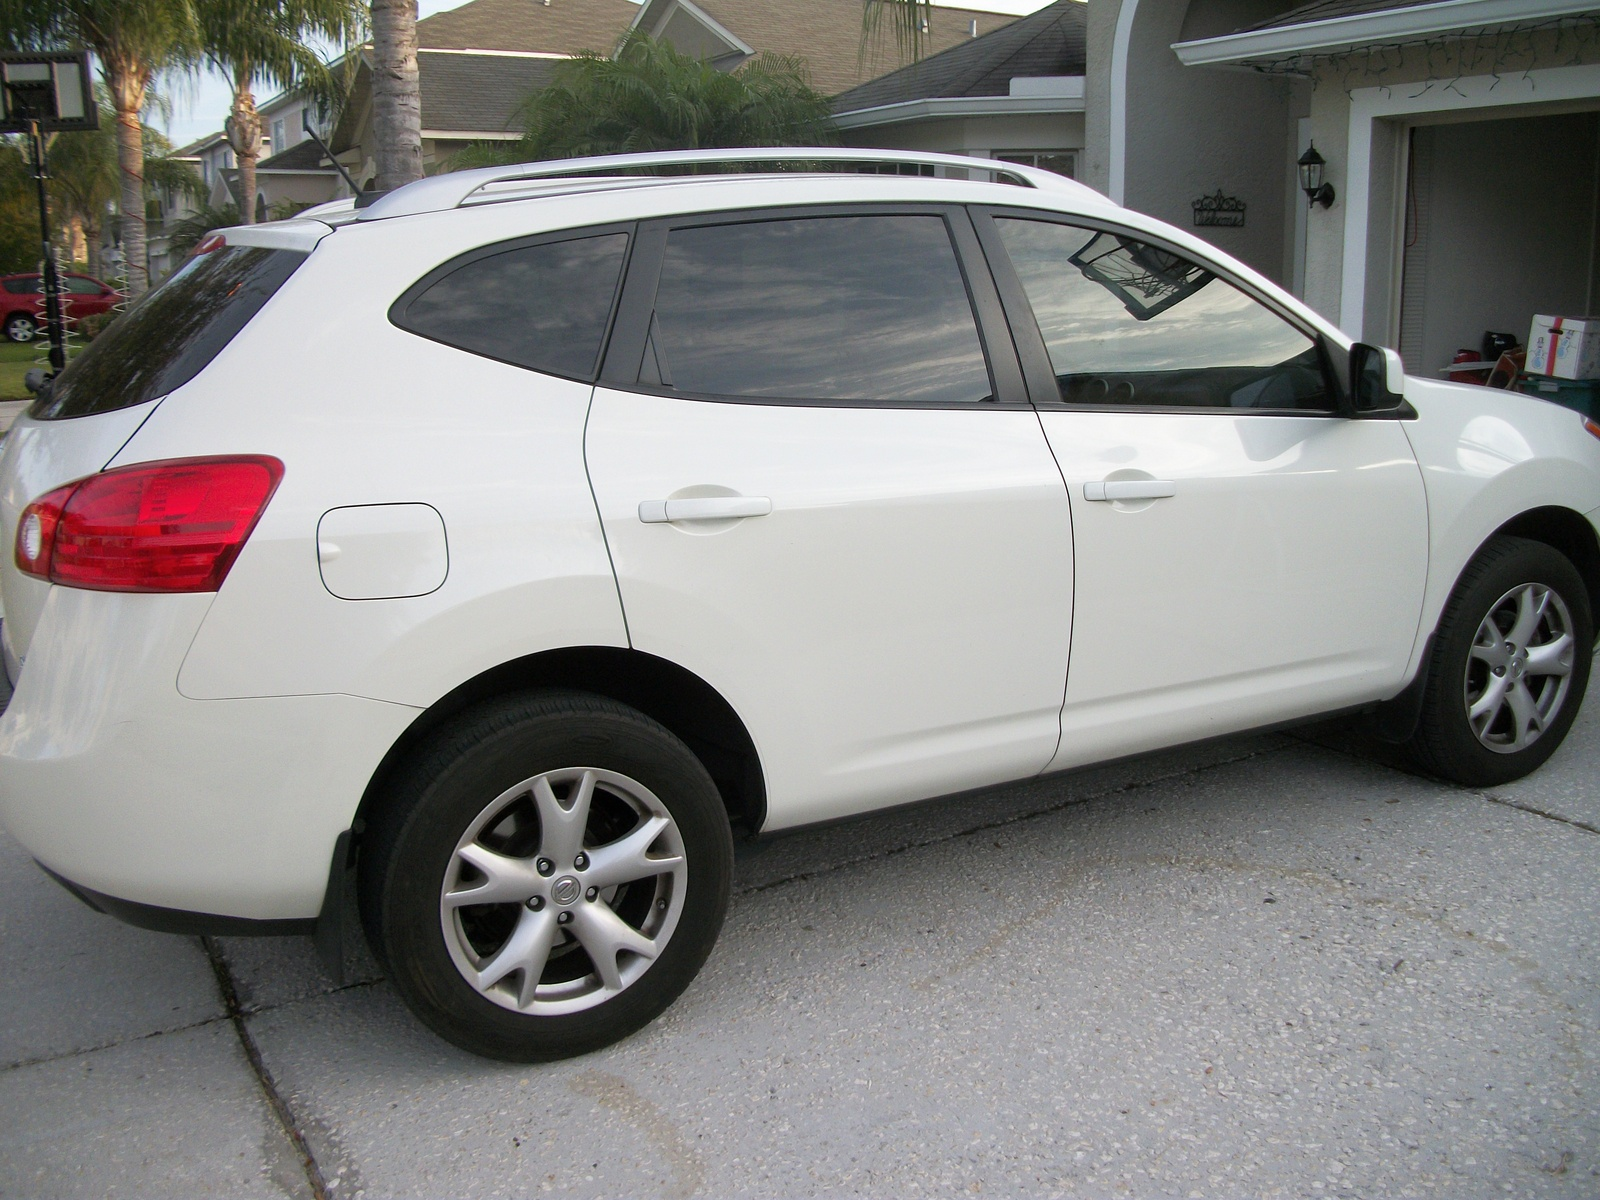 Used Nissan Rogue For Sale Houston Tx Cargurus: 2007 Nissan Rogue Interior